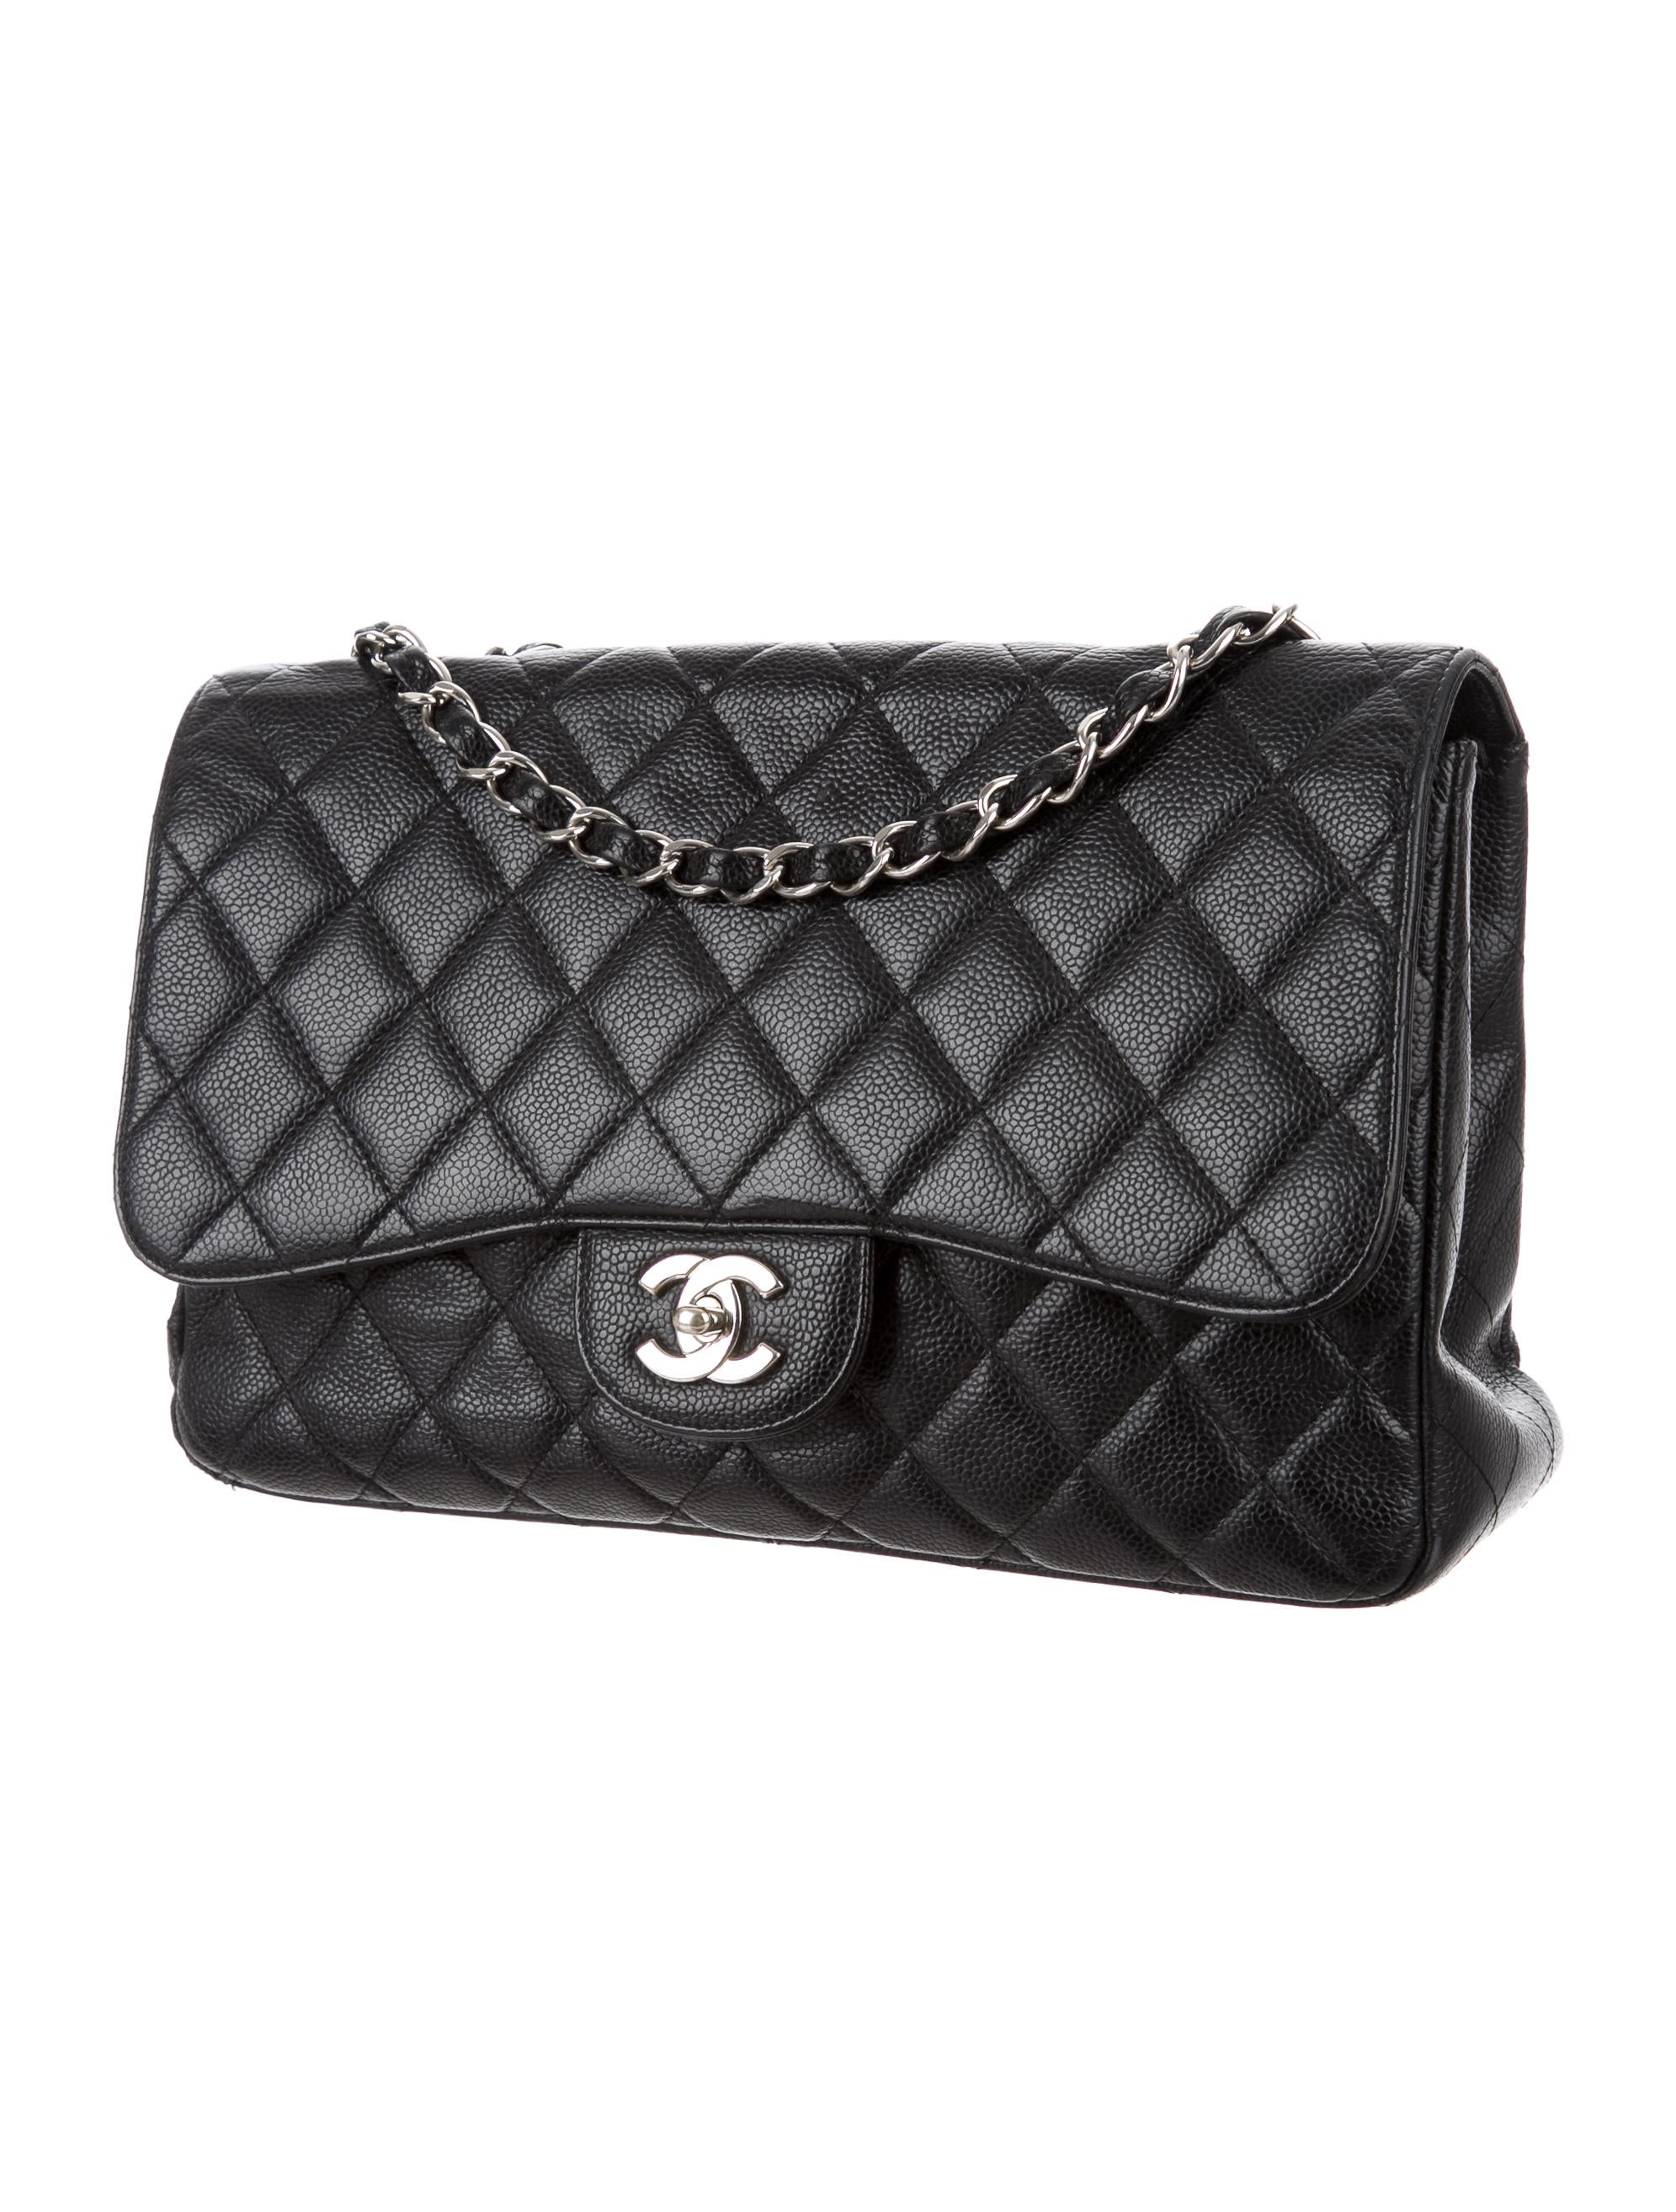 1307fd04726e Chanel Classic 14662 Women's Handbag | Stanford Center for ...